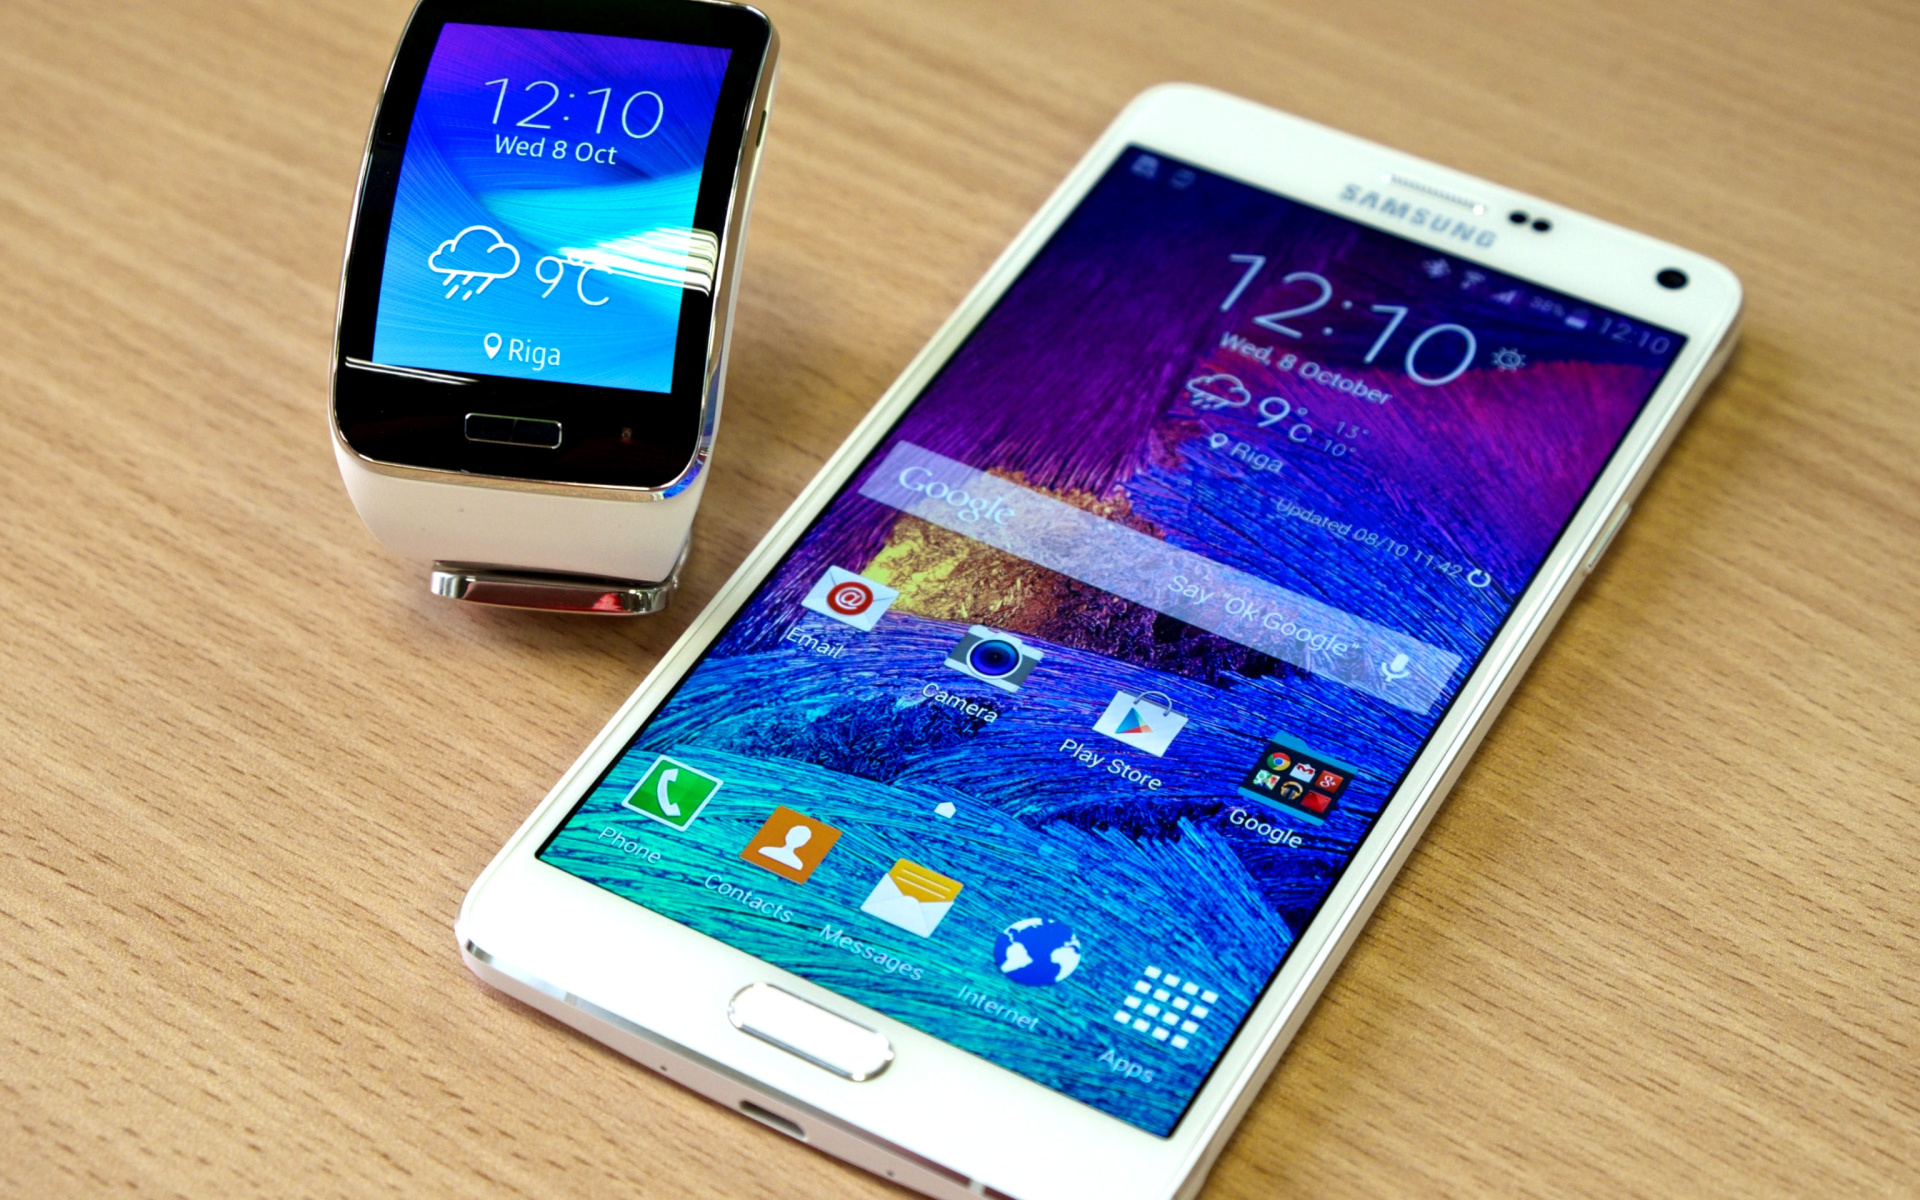 Samsung Galaxy And Samsung Gear S Smartwatch Wallpaper For